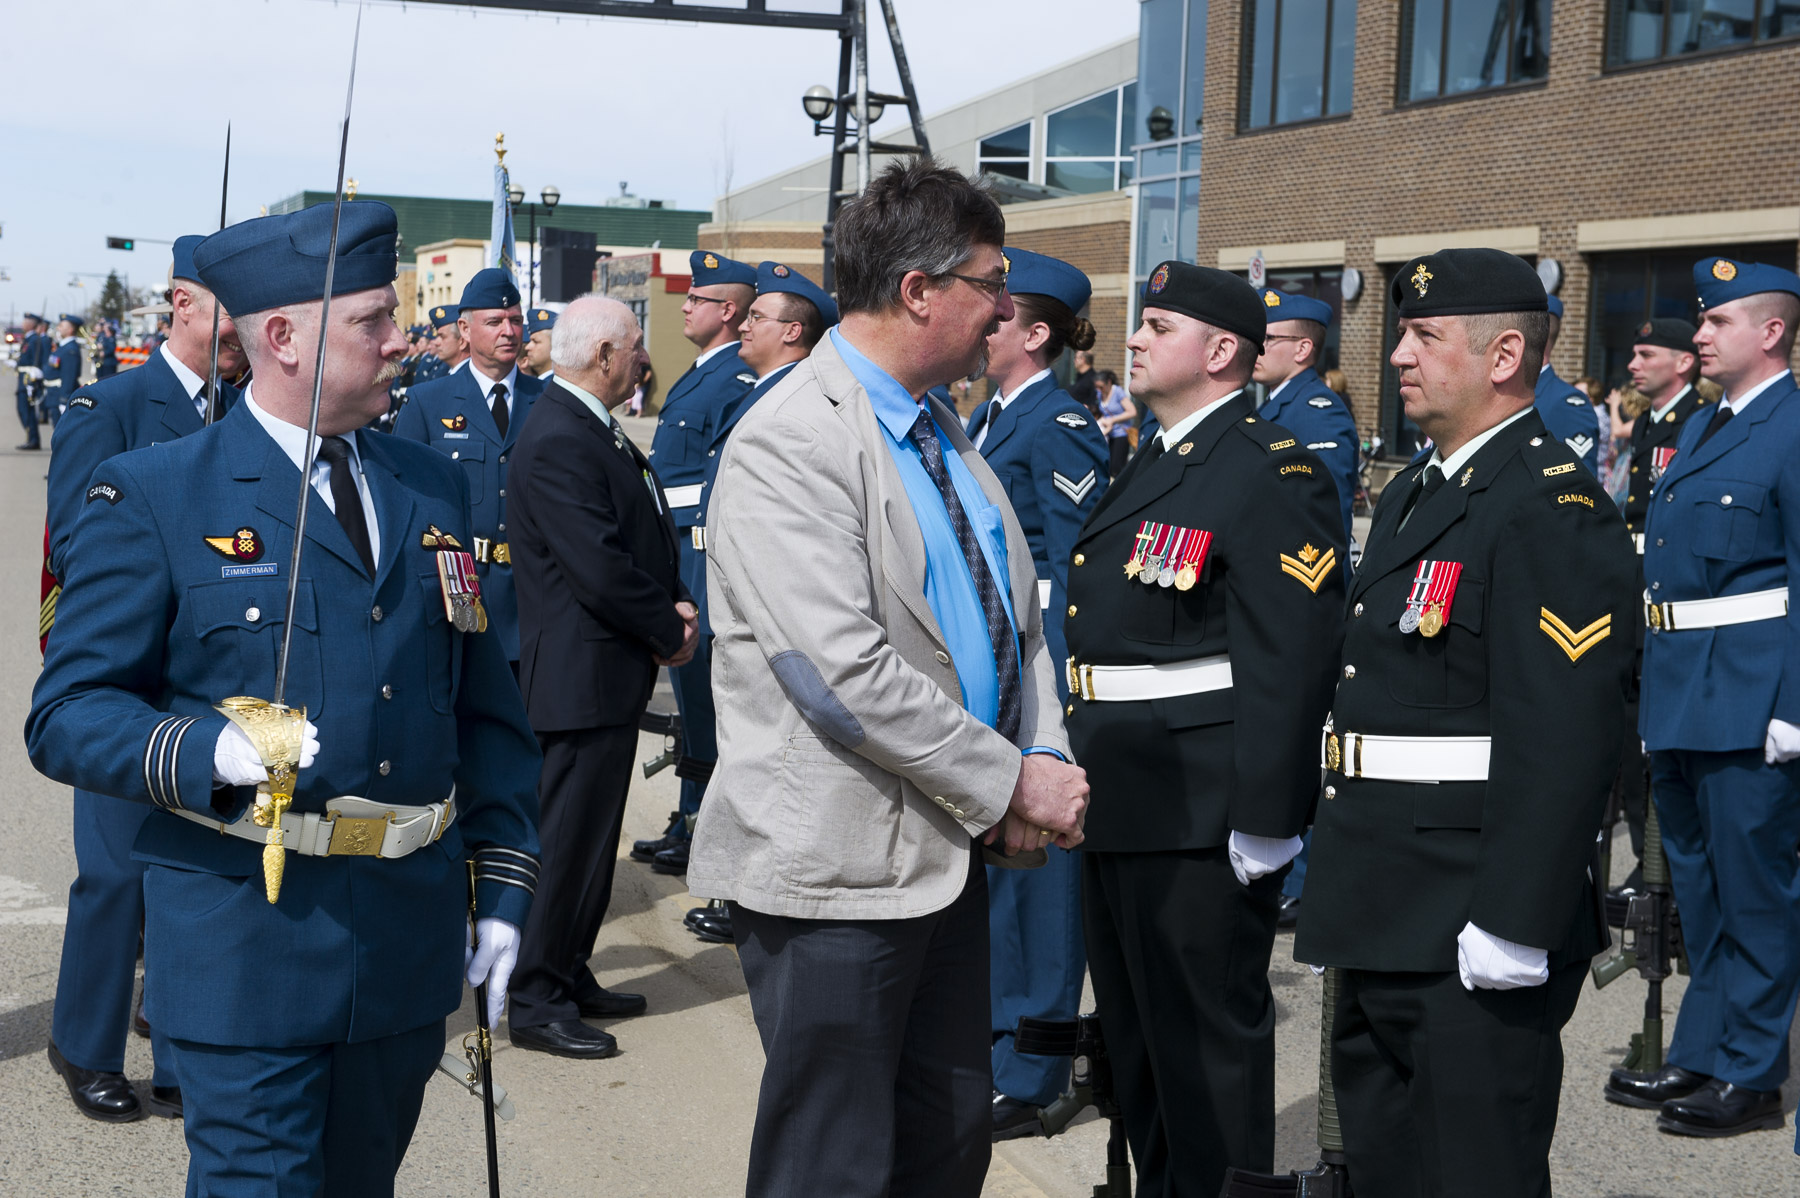 Mayor of Bonnyville, Alberta, Gene Sobolewski inspects the military personnel on parade during the ceremony granting Freedom of the City for the Town of Bonnyville and Municipal District of Bonnyville to 4 Wing Cold Lake on May 5, 2017. PHOTO: Corporal Justin Roy, CK07-2017-0343-005